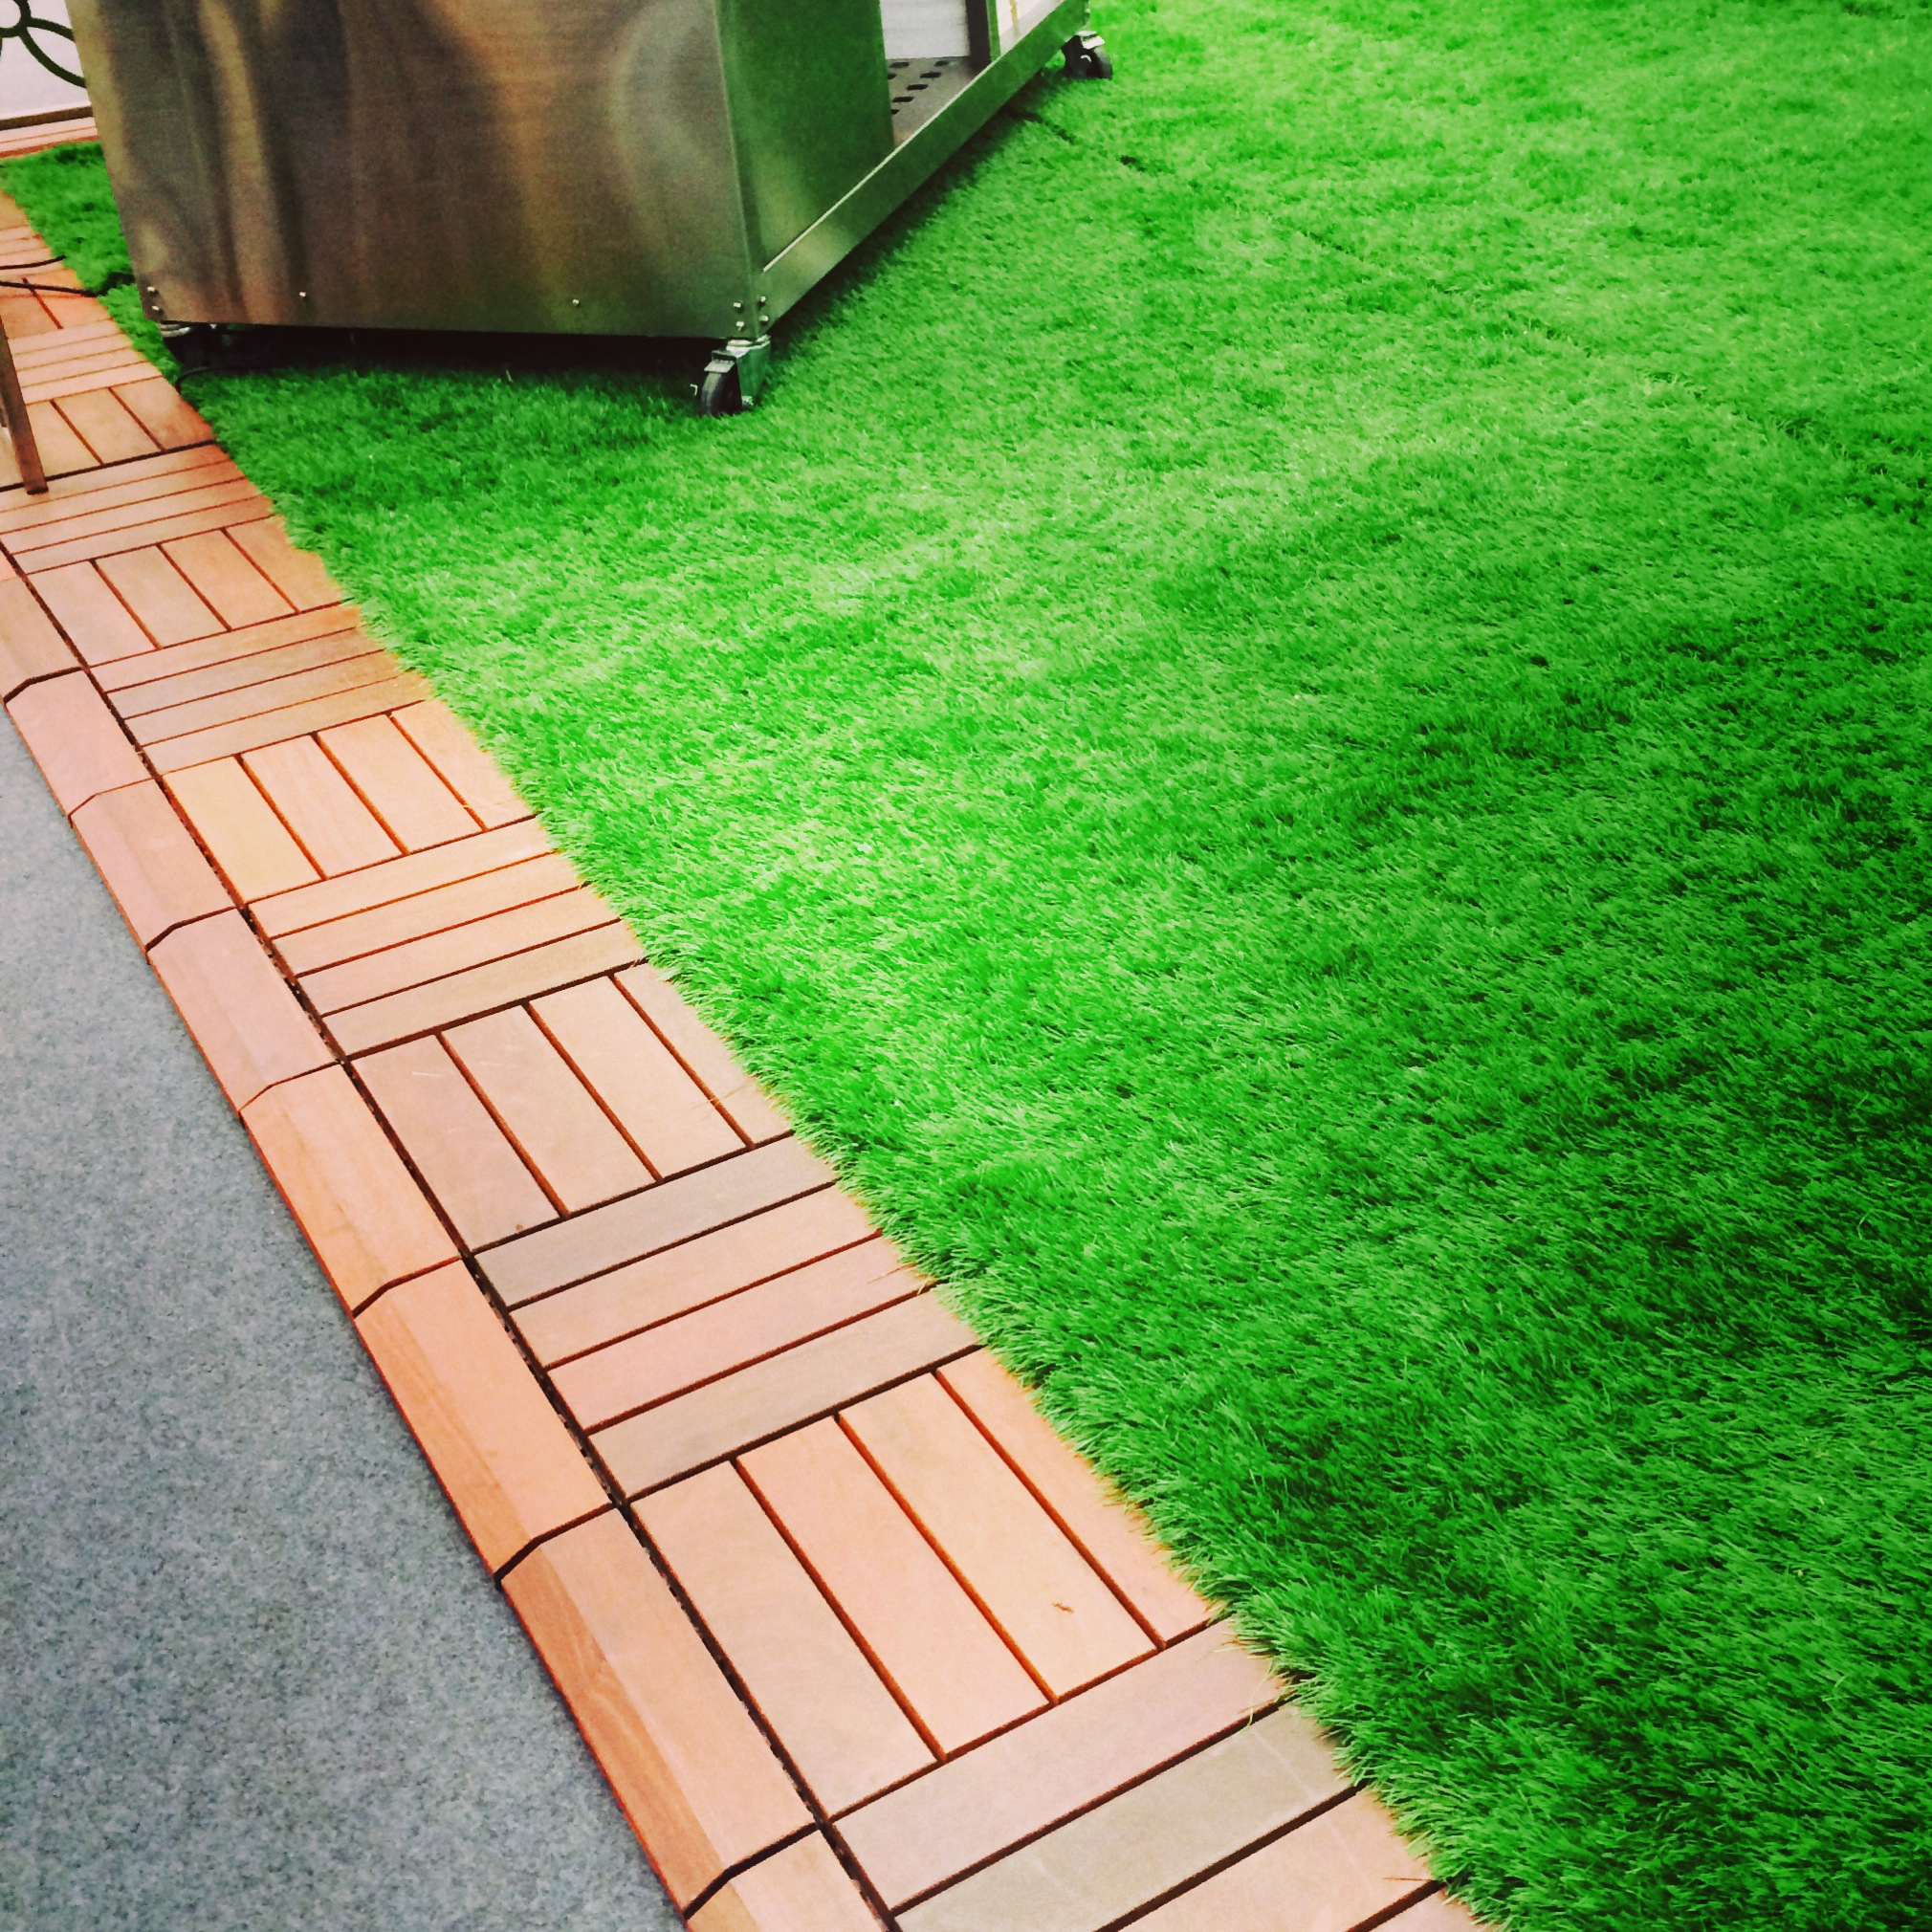 and lastly, i was very inspired by this AstroTurf. so inspired there is a 6x10 strip of it coming to my apartment very soon.